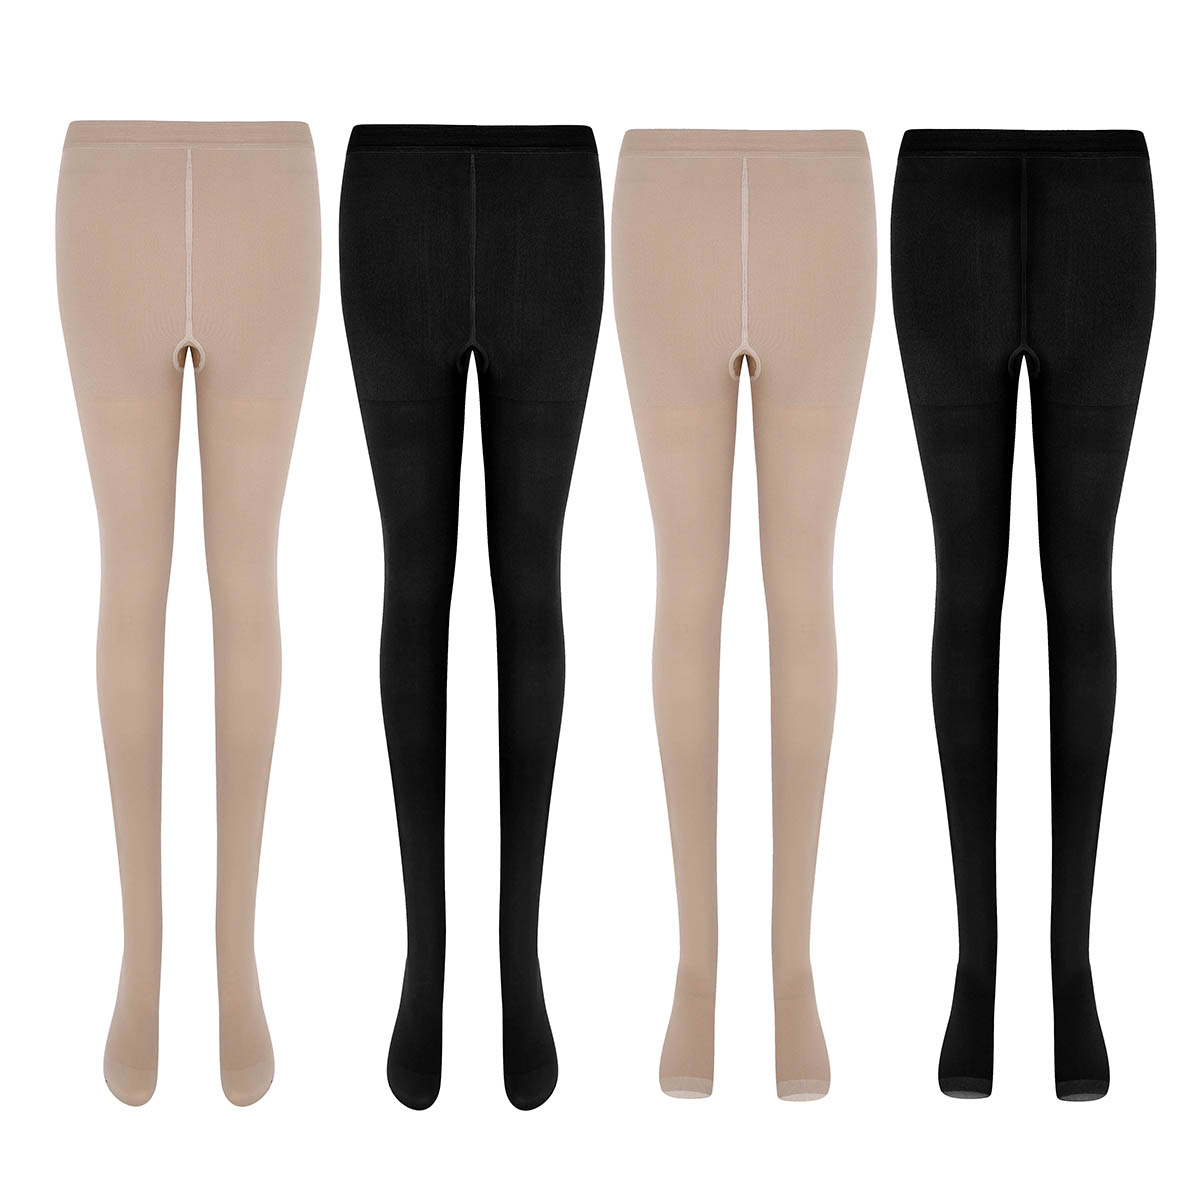 44e283a18 Detail Feedback Questions about Women Opaque Compression Stockings ...